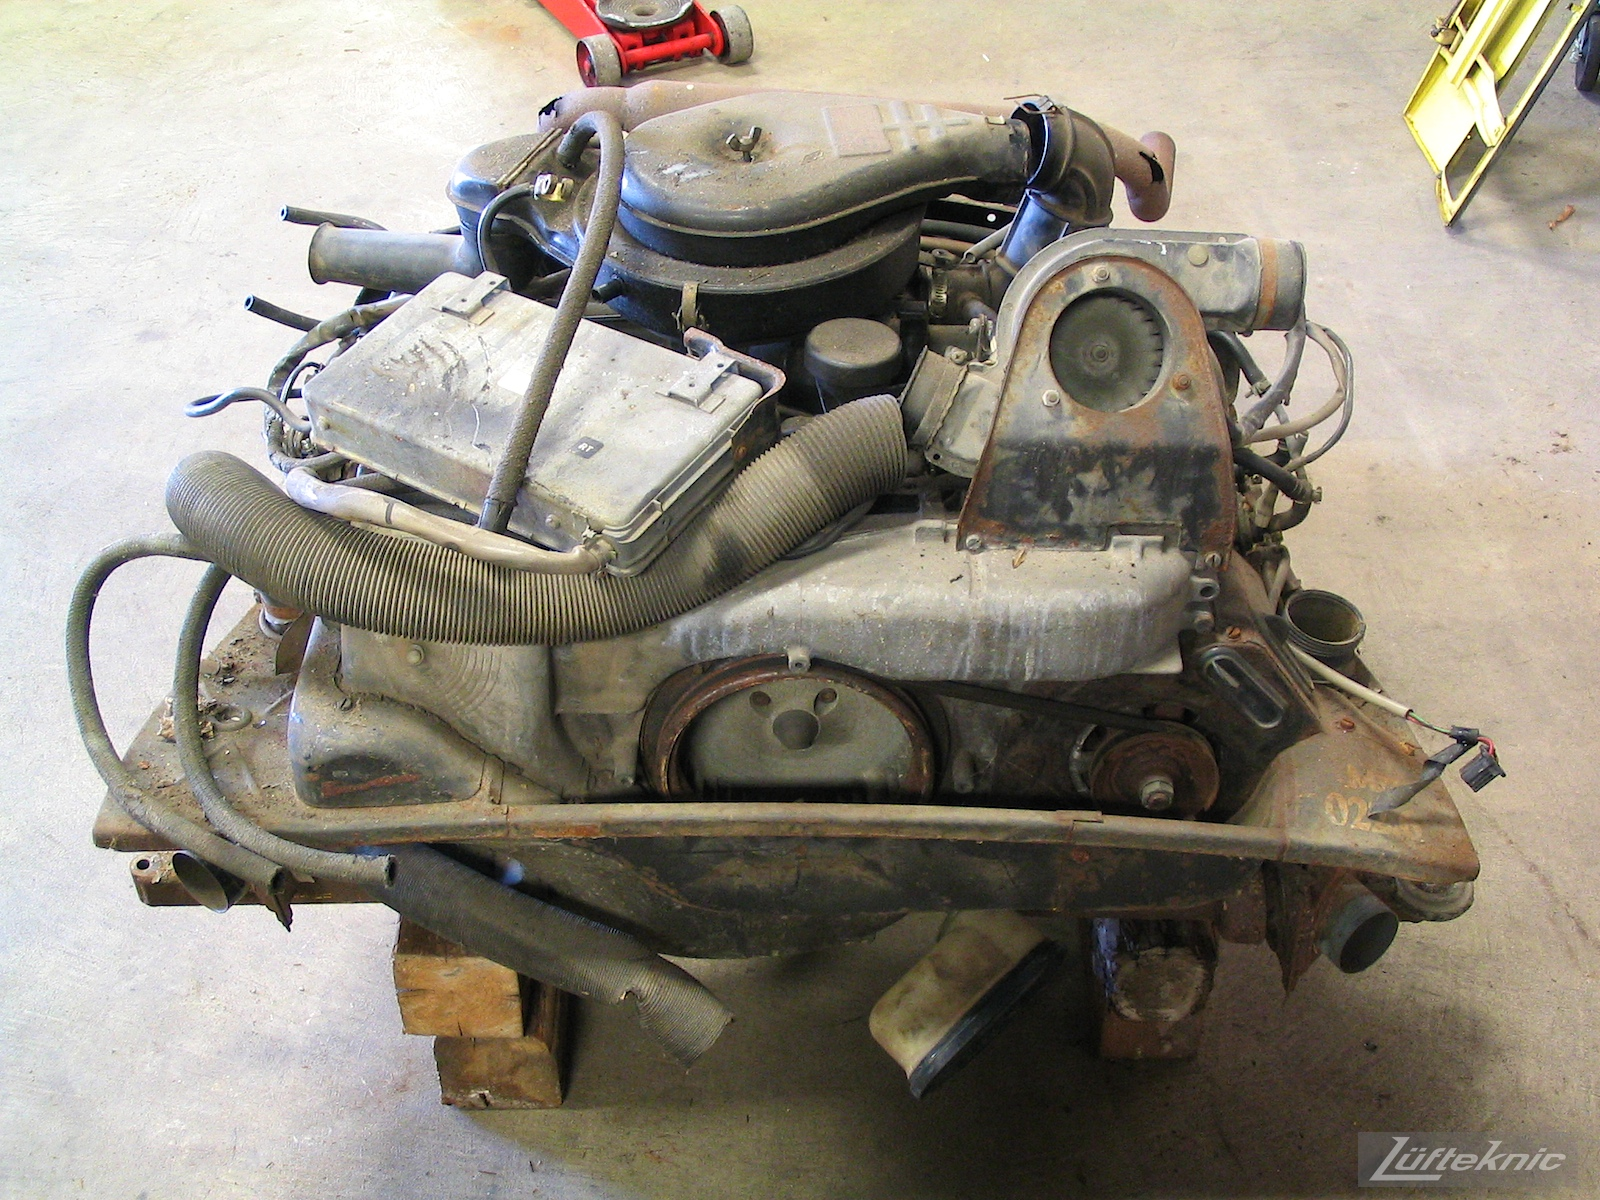 A neglected 914 engine sitting on blocks after removal from a 914 being restored.